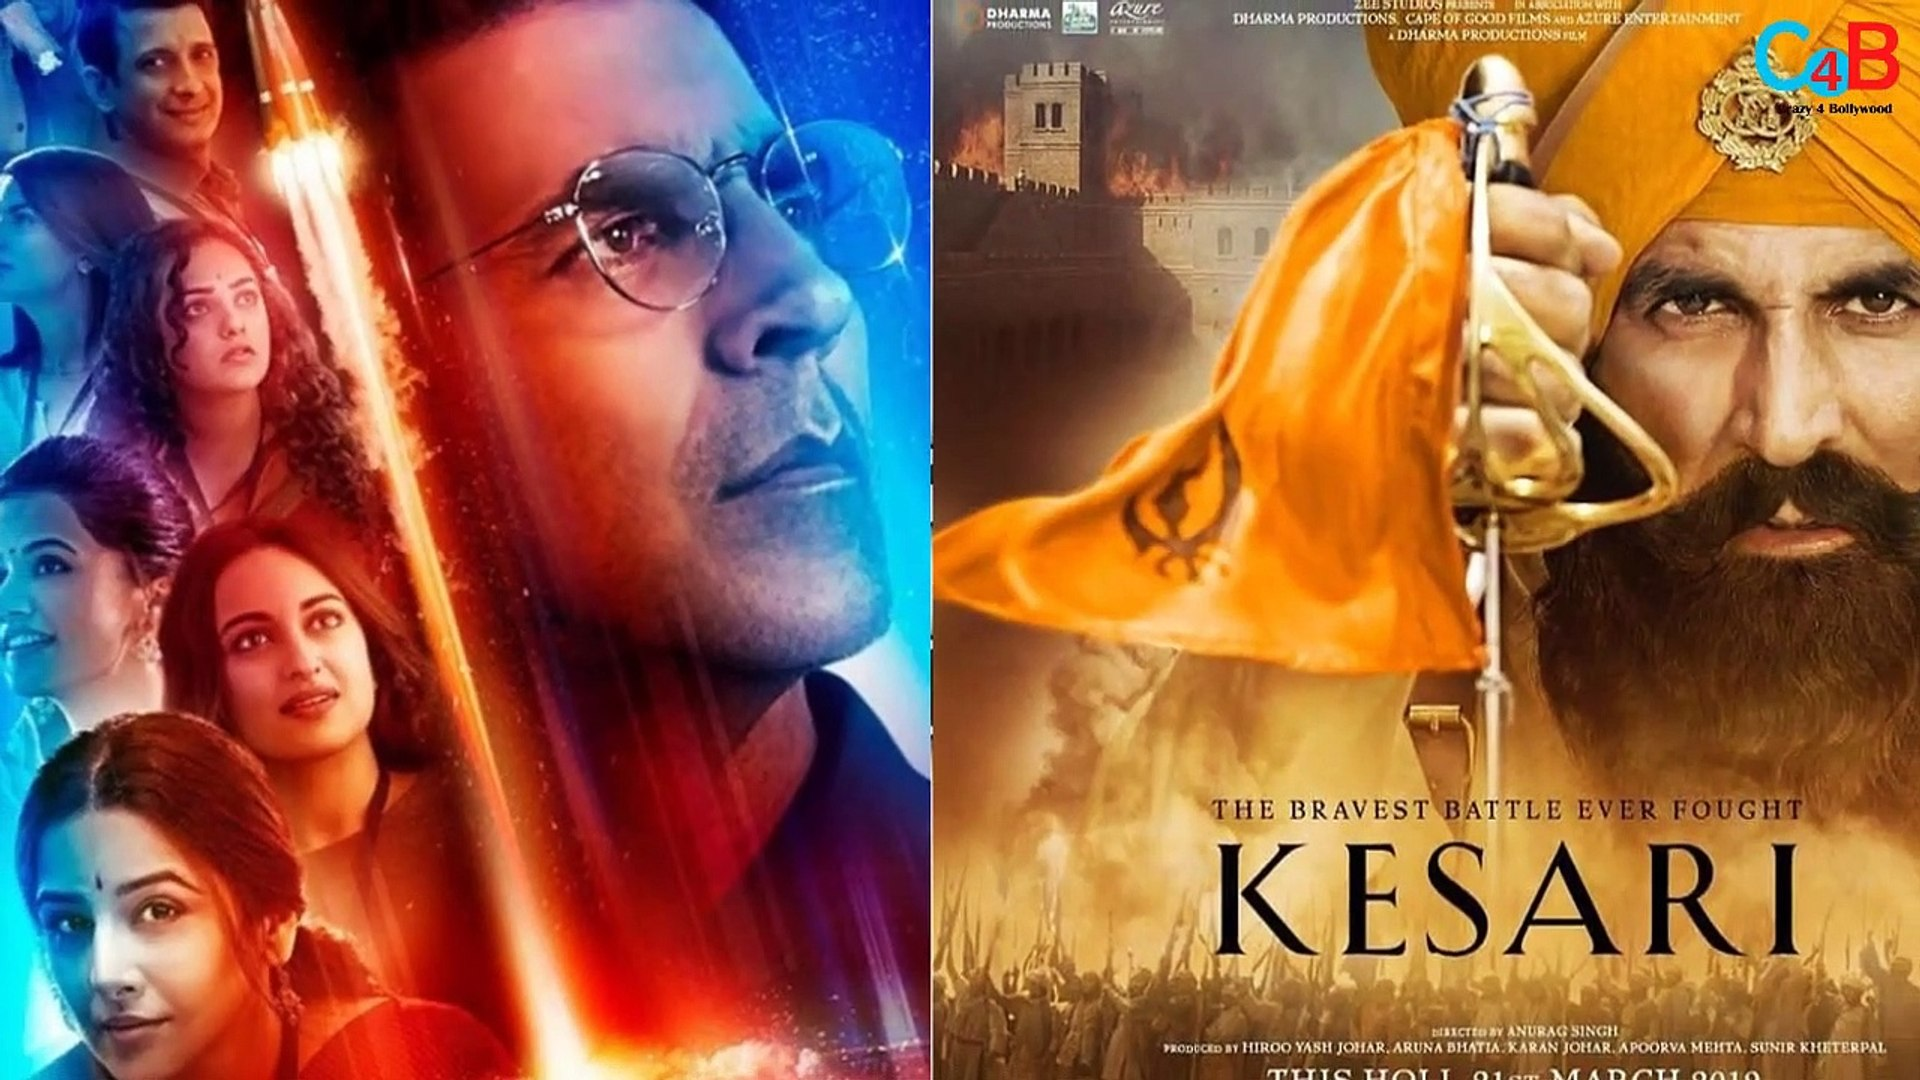 Akshay Kumar Become No. 1 Star Beats Its Own Films Record